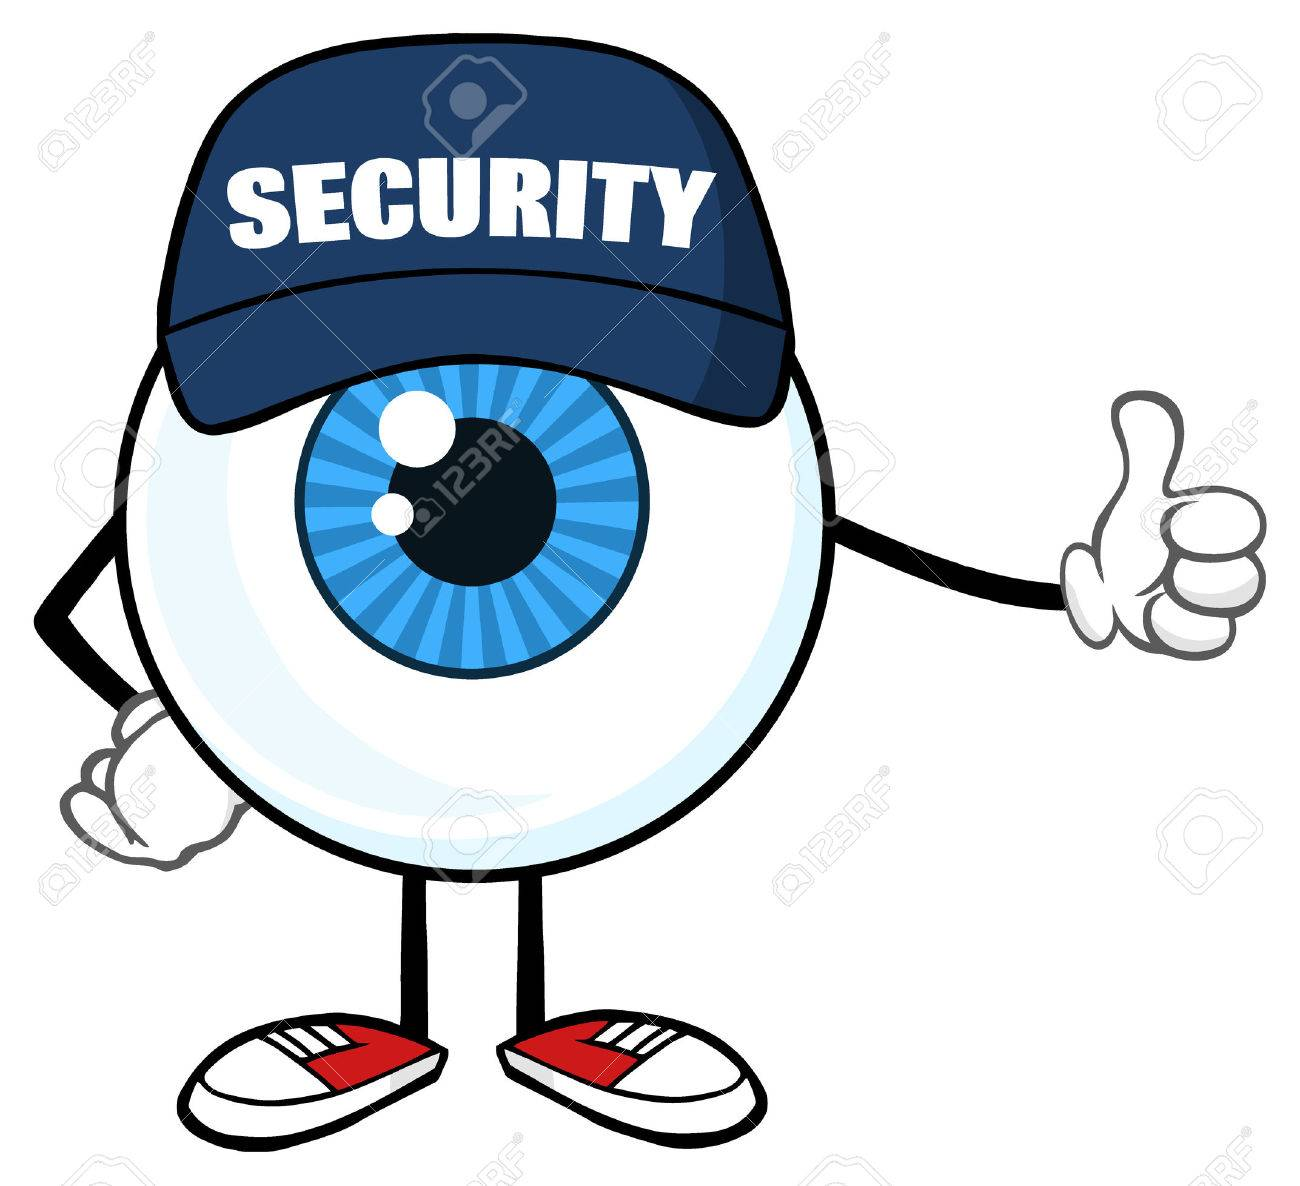 61548008-blue-eyeball-cartoon-mascot-character-security-guard-giving-a-thumb-up-illustration-isolated-on-whit